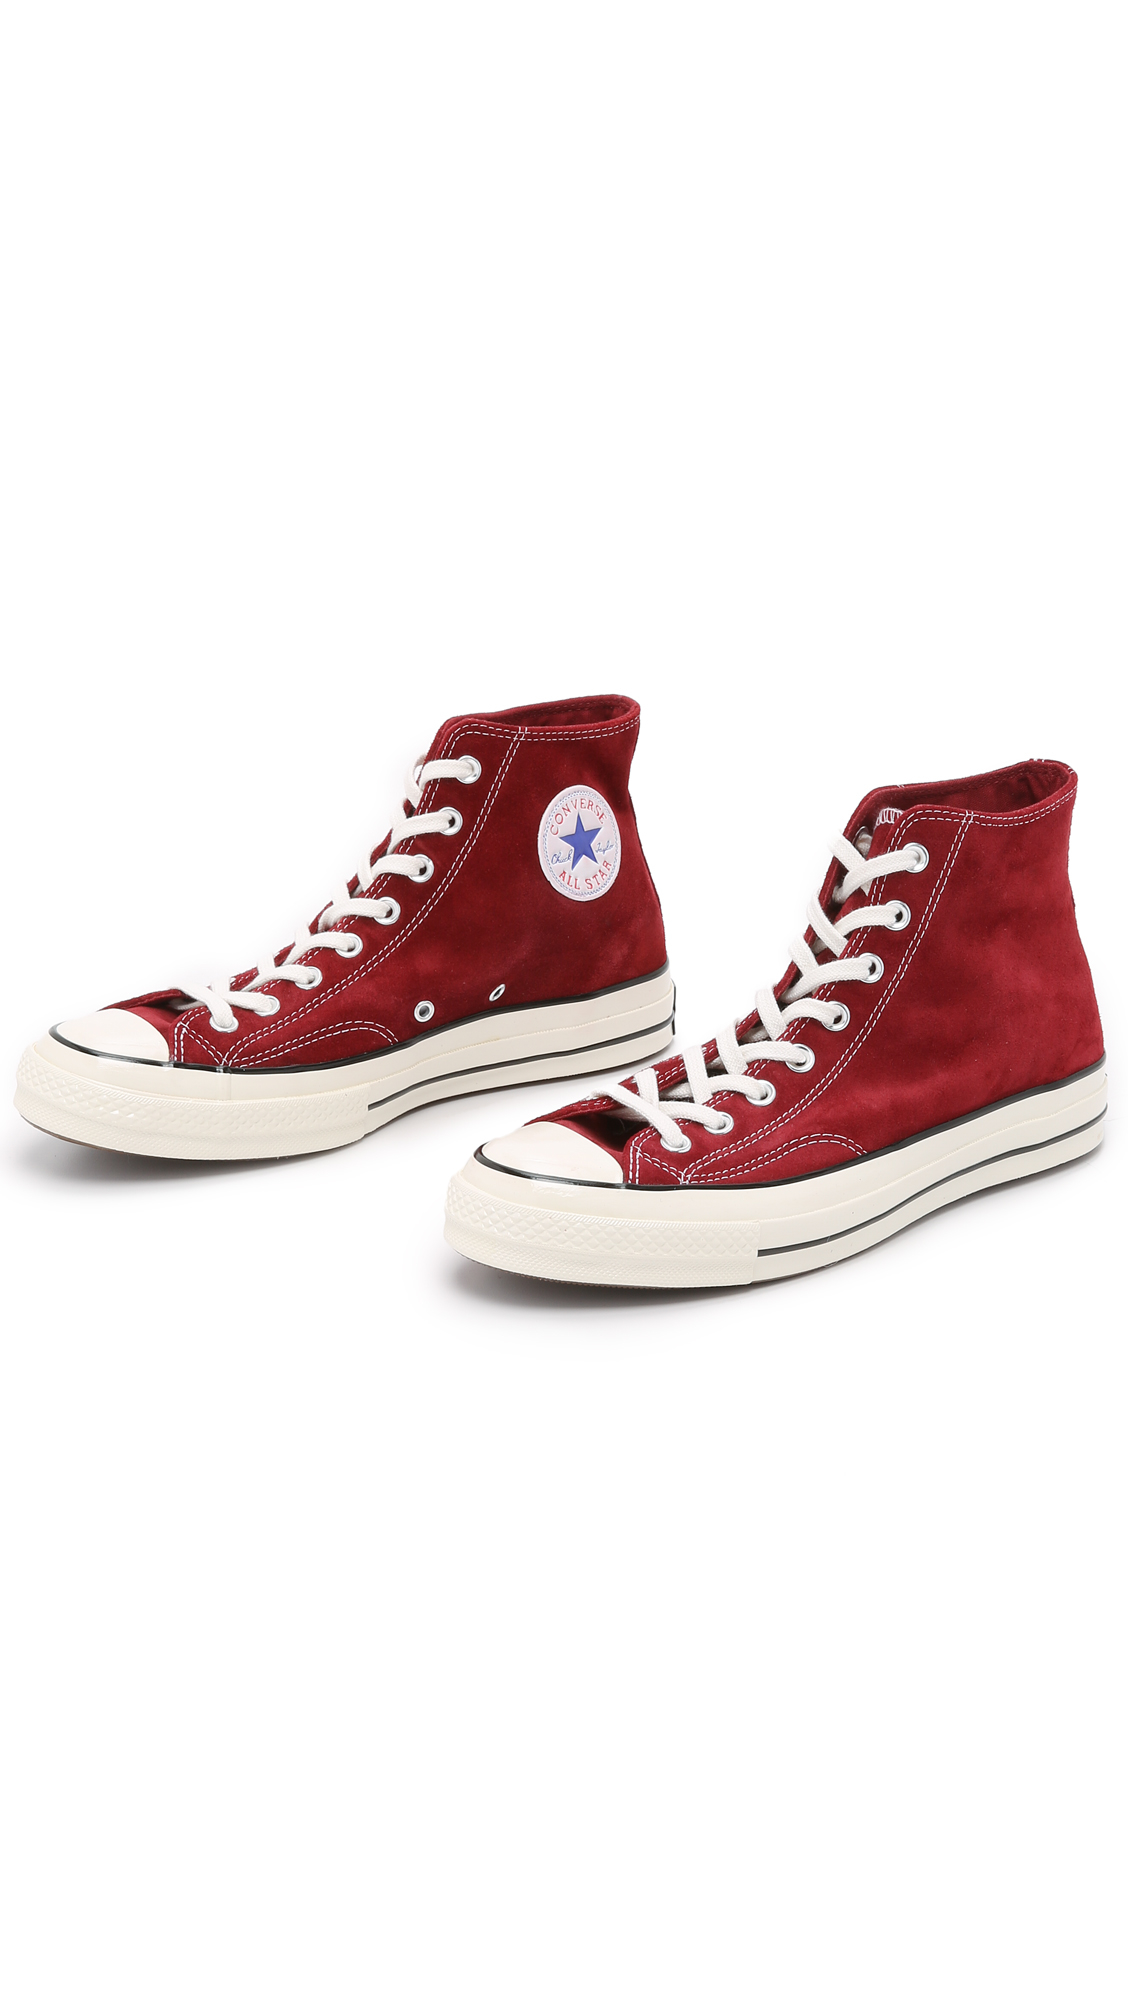 98273557b11 Lyst - Converse Chuck Taylor All Star  70s Suede High Top Sneakers ...